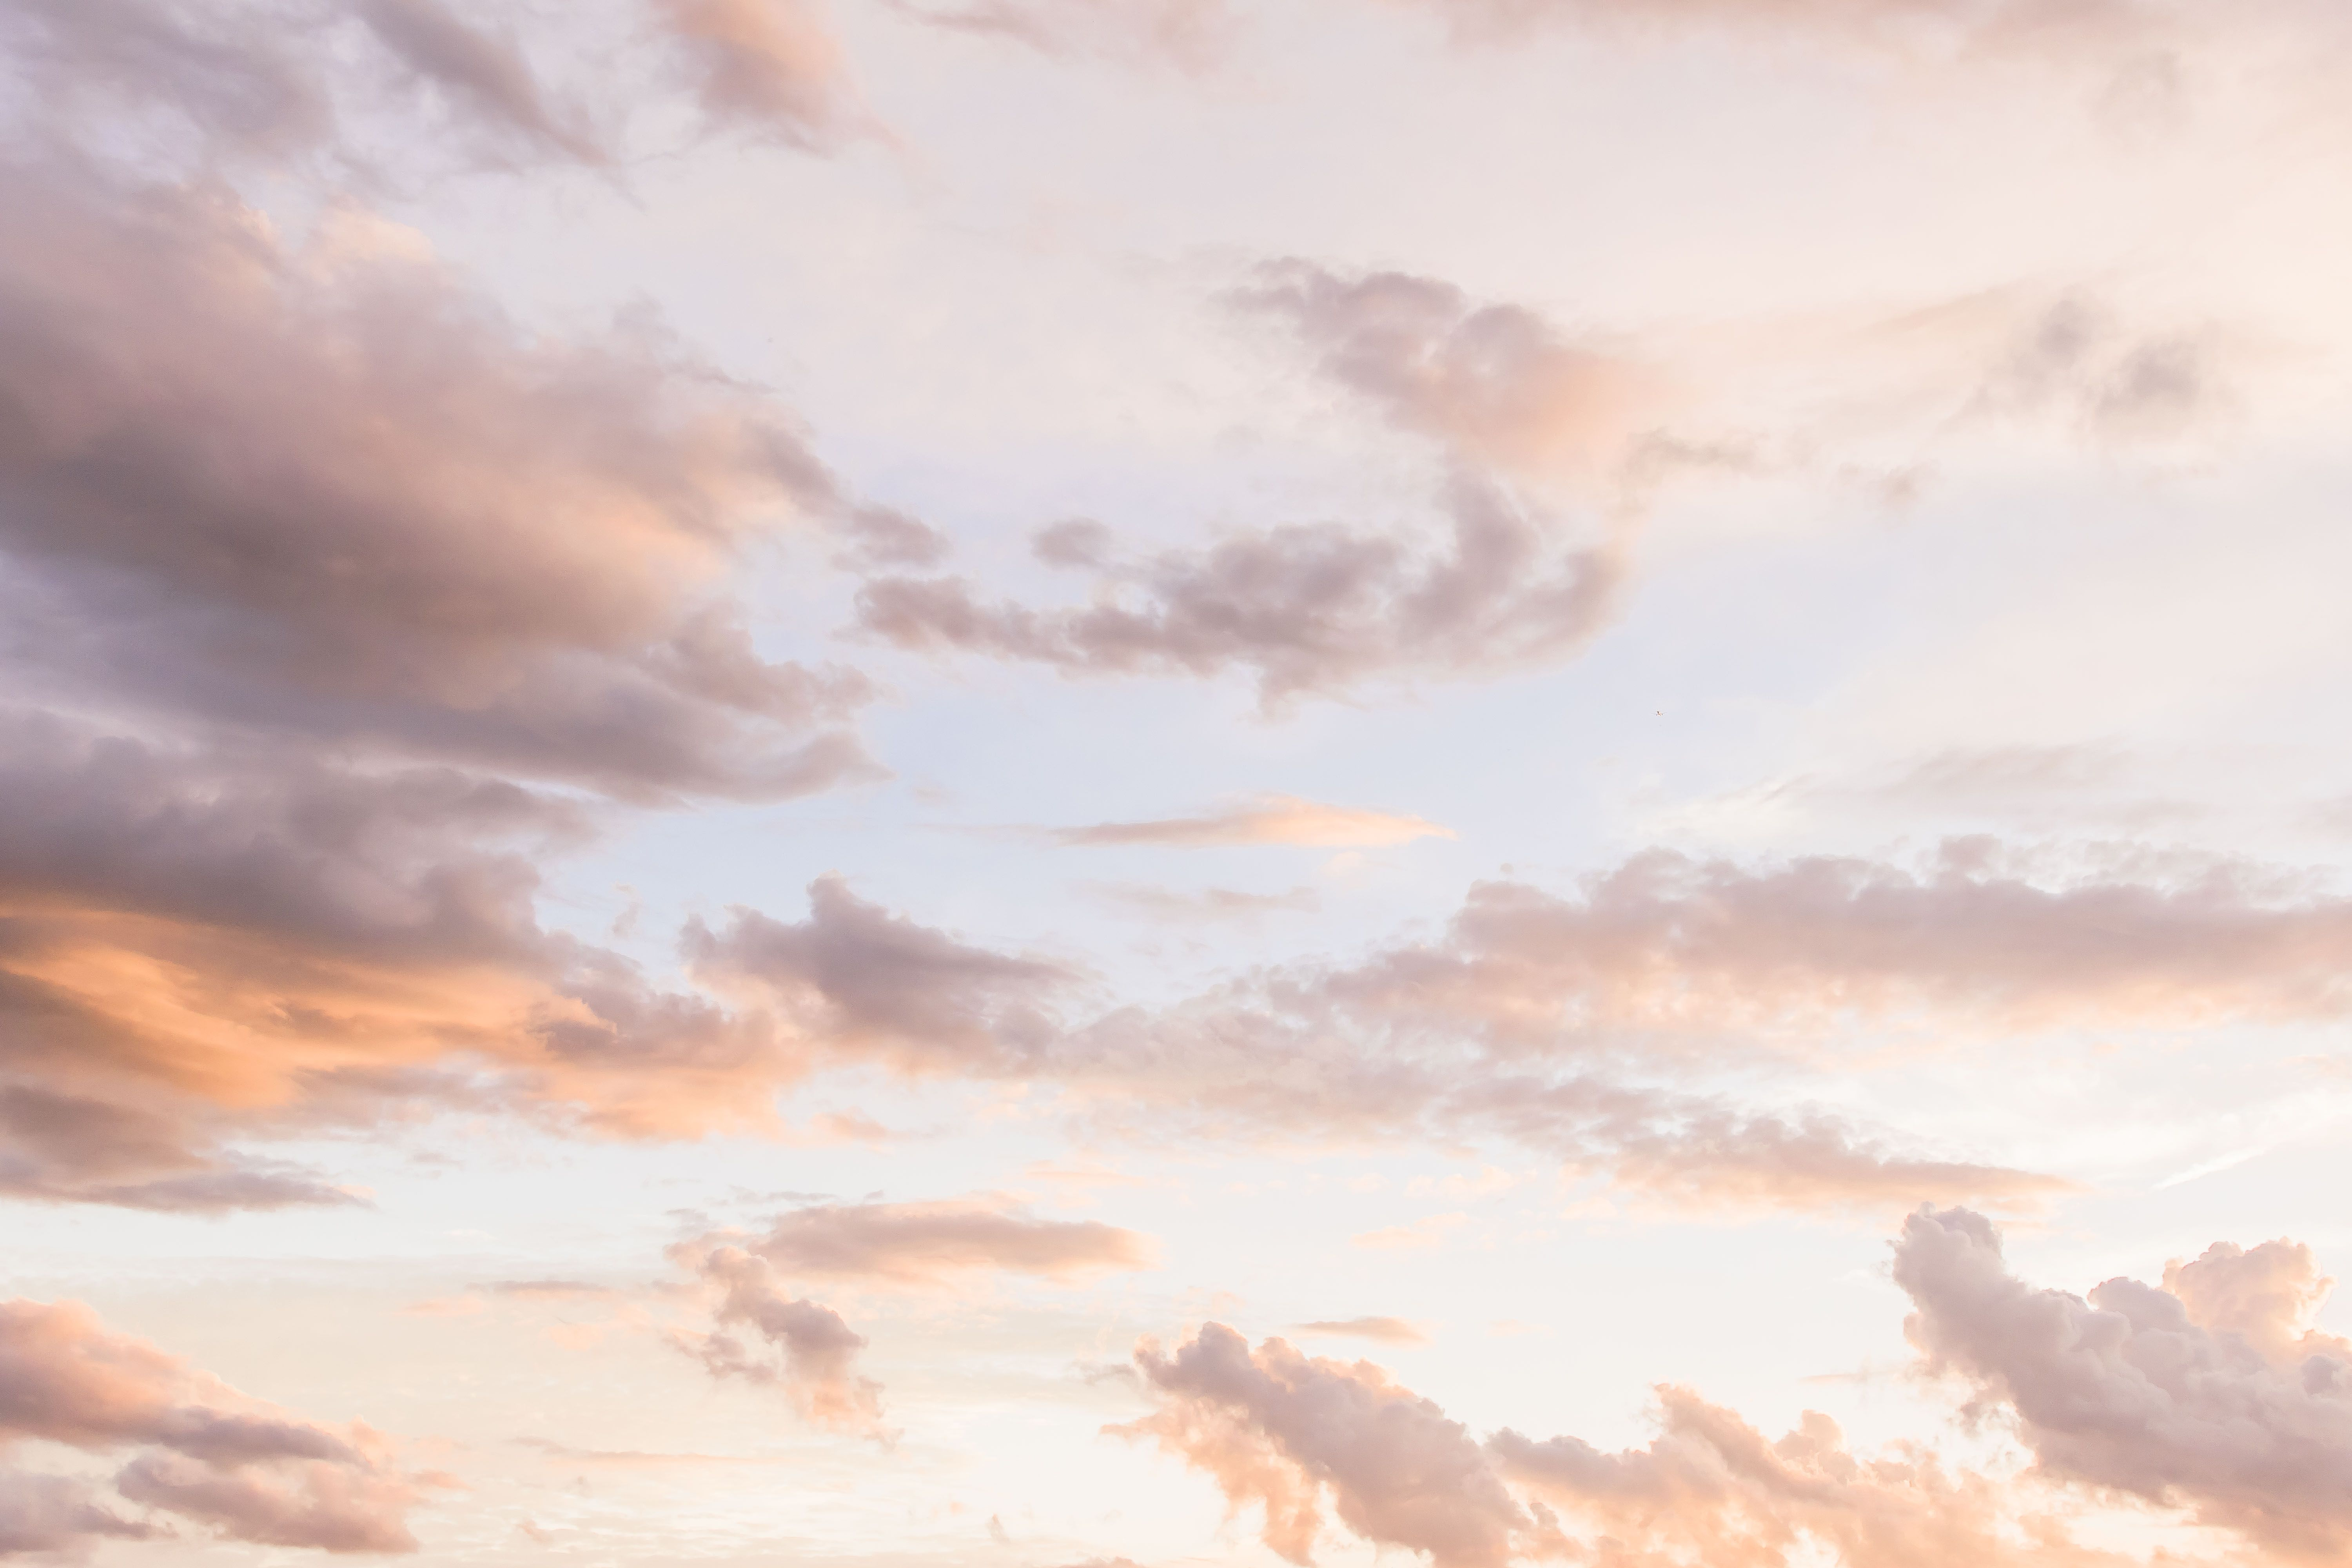 Pastel Aesthetic Clouds Wallpapers Top Free Pastel Aesthetic Clouds Backgrounds Wallpaperaccess